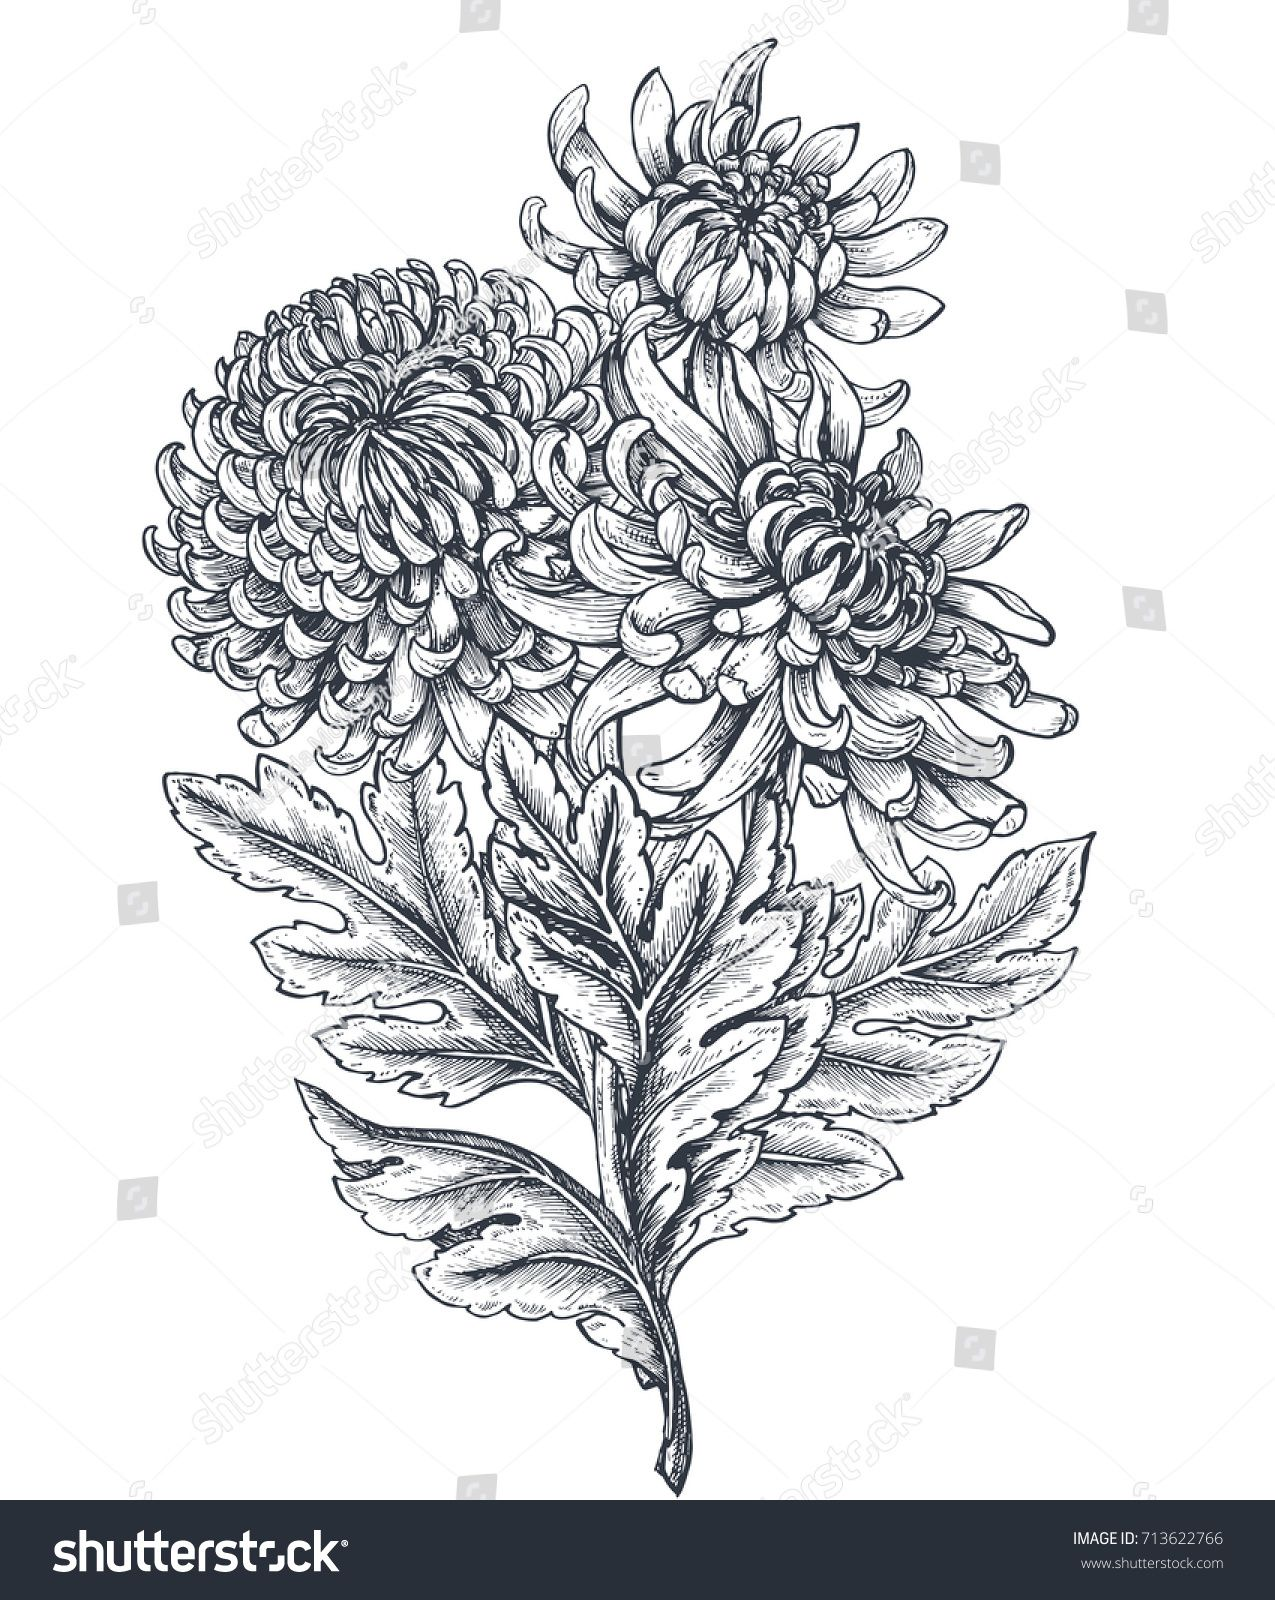 Vector Bouquet With Black And White Hand Drawn Chrysanthemum Flowers In Sketch Style Beautiful Floral Background How To Draw Hands Vector Free Vector Images